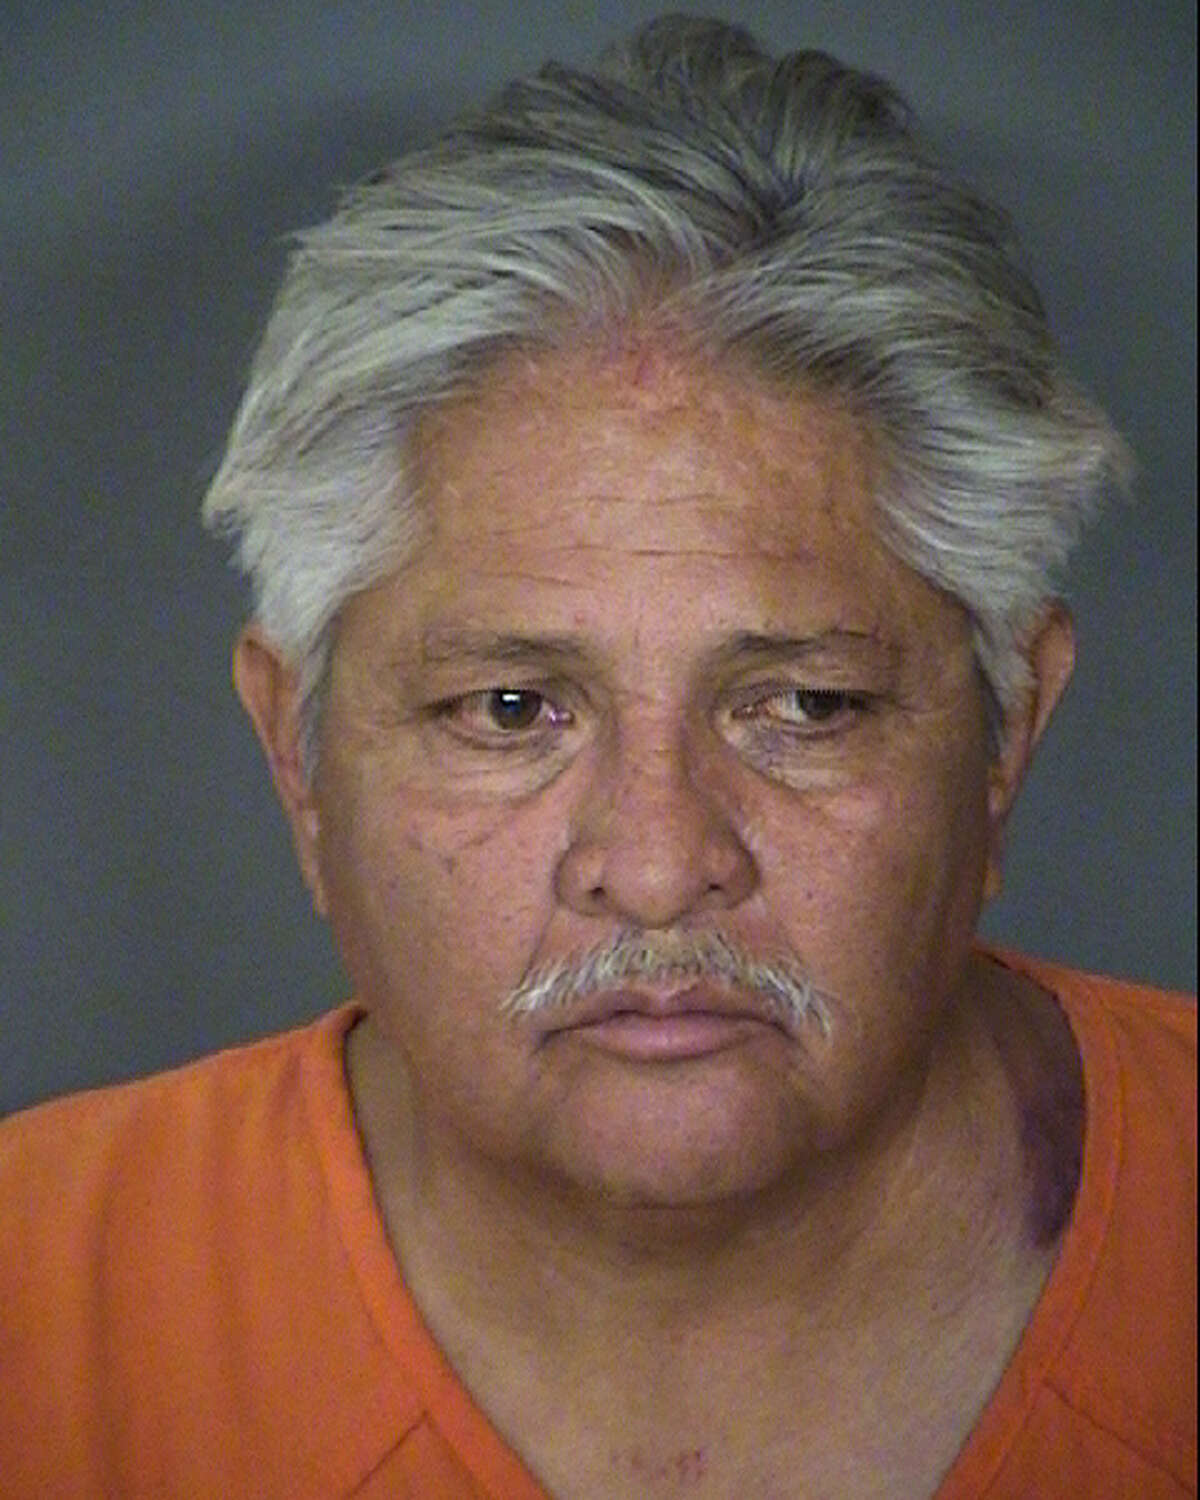 """Daniel Nunez, 54, accused of intoxication manslaughter in the death of Allen """"Scotty"""" Lee, 57."""